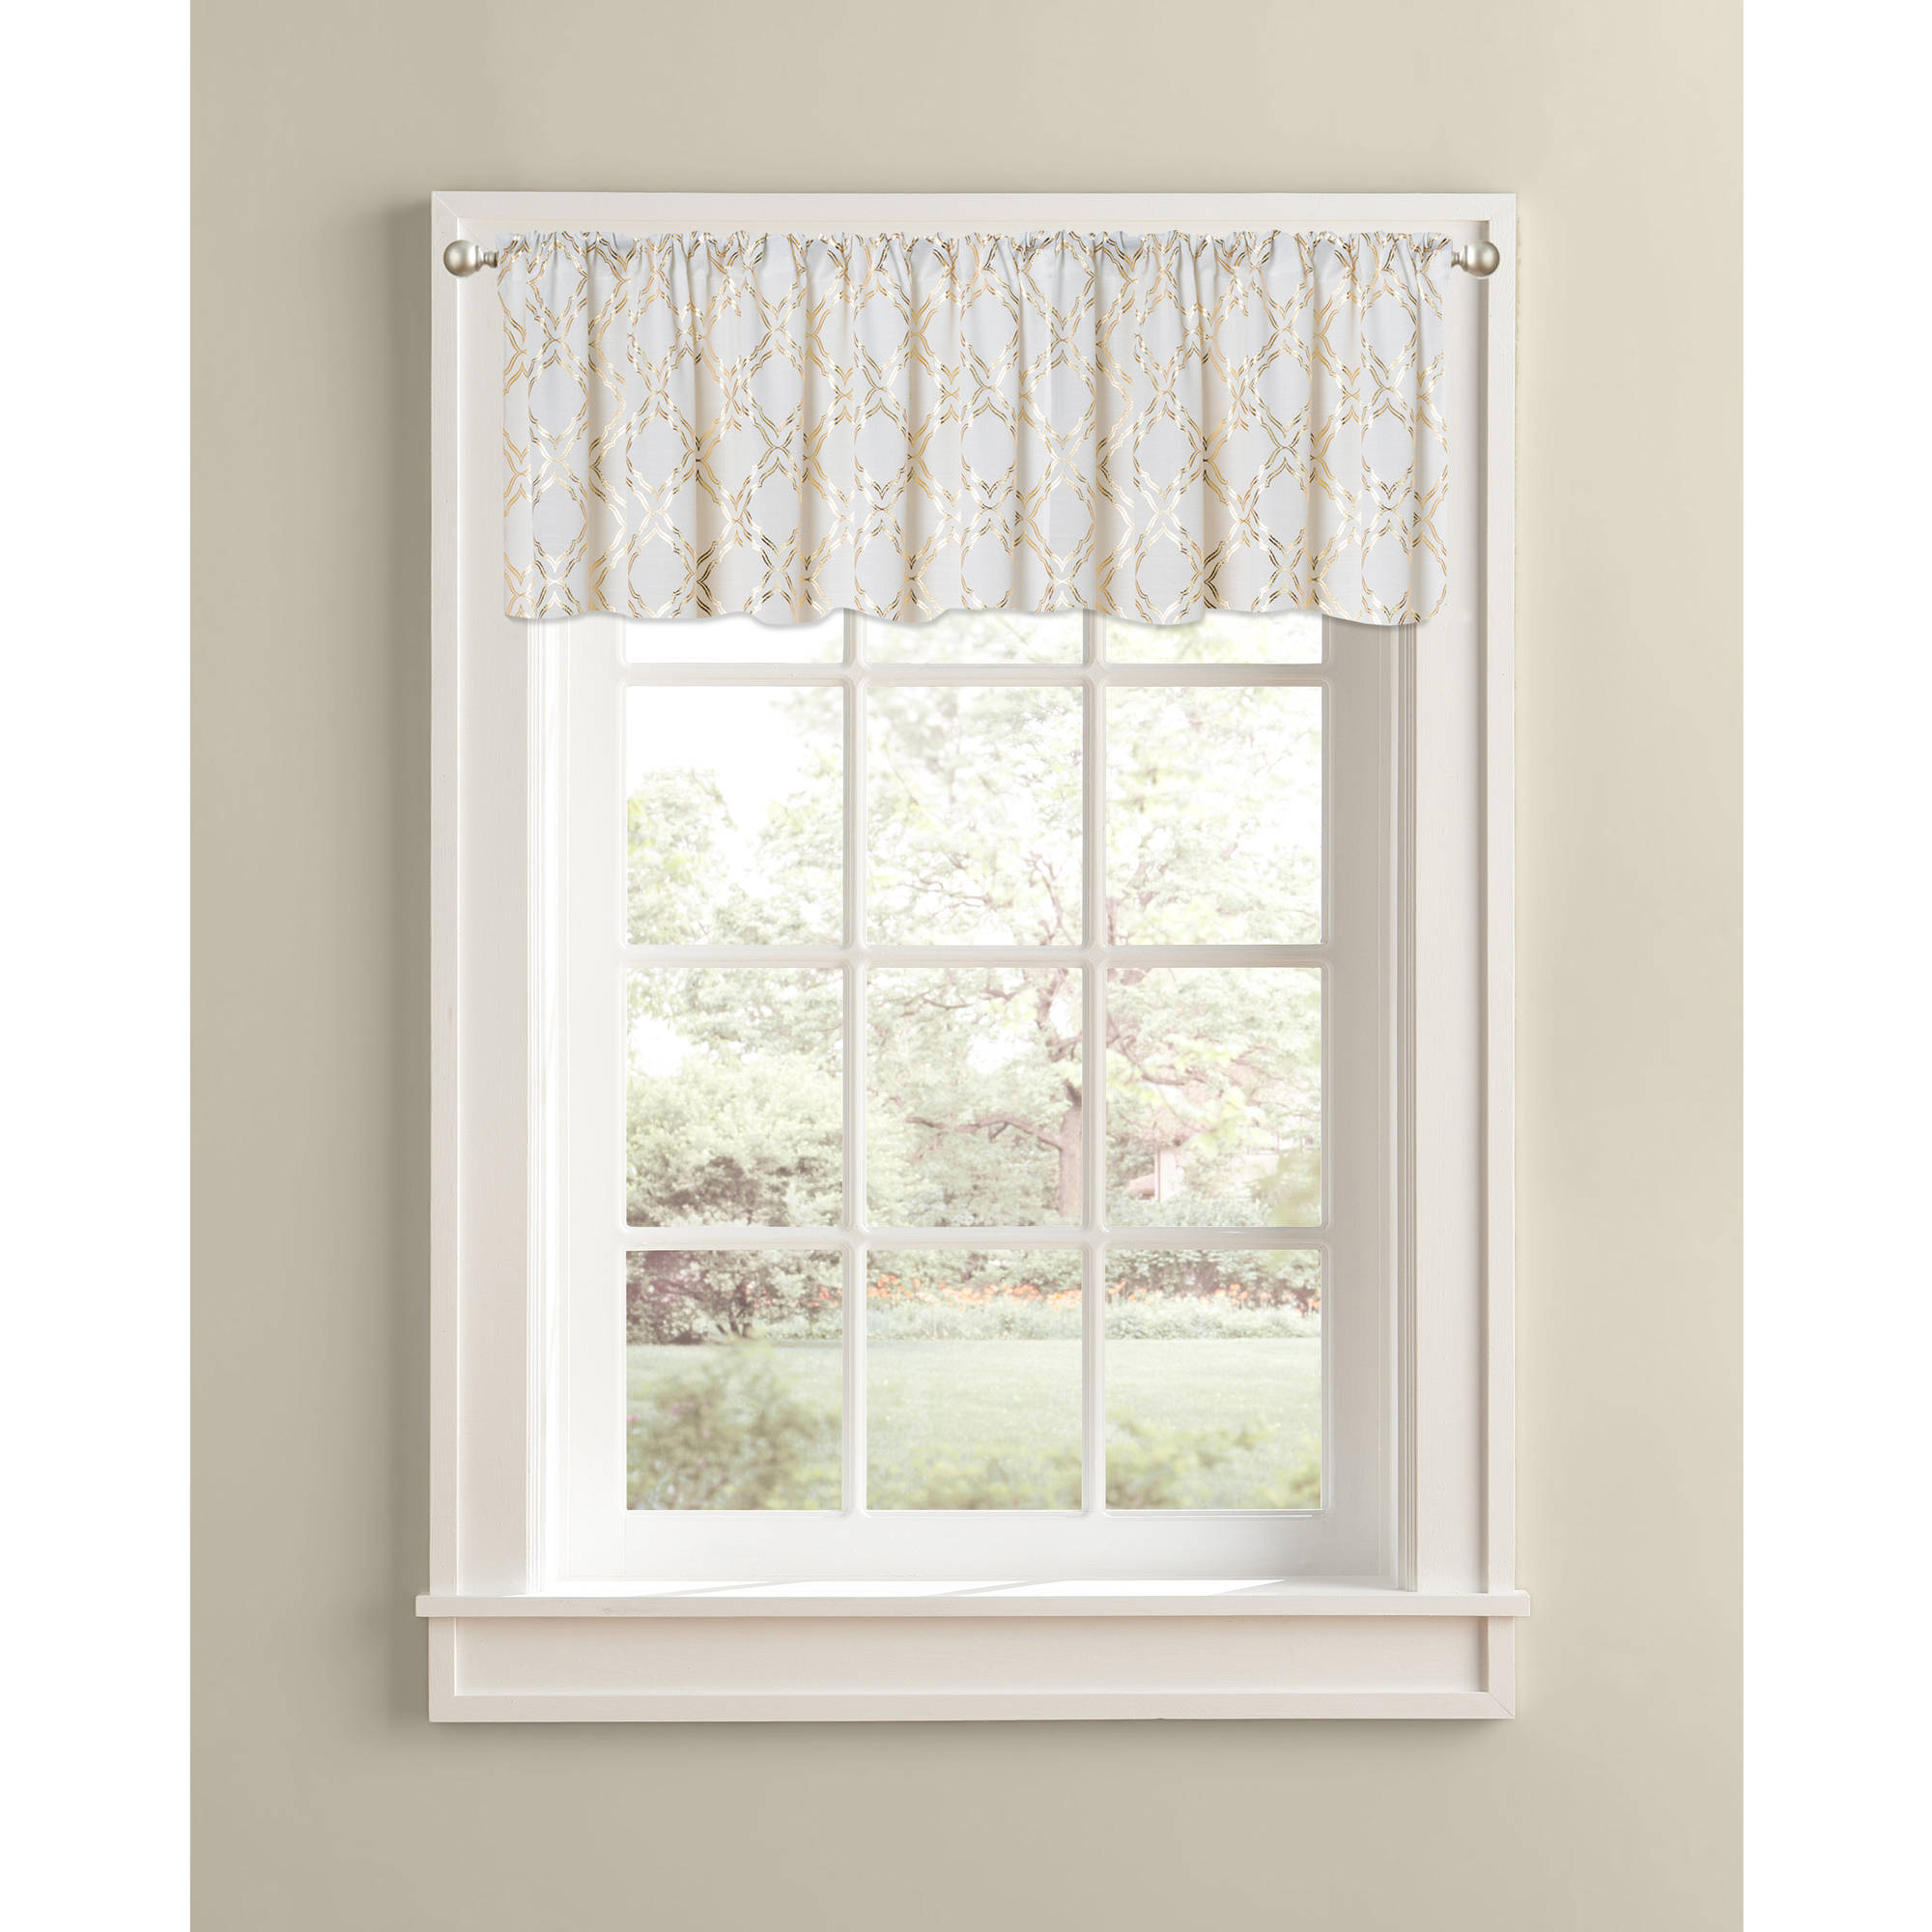 Better Homes and Gardens Golden Trellis Valance, Rod Pocket by Colordrift LLC